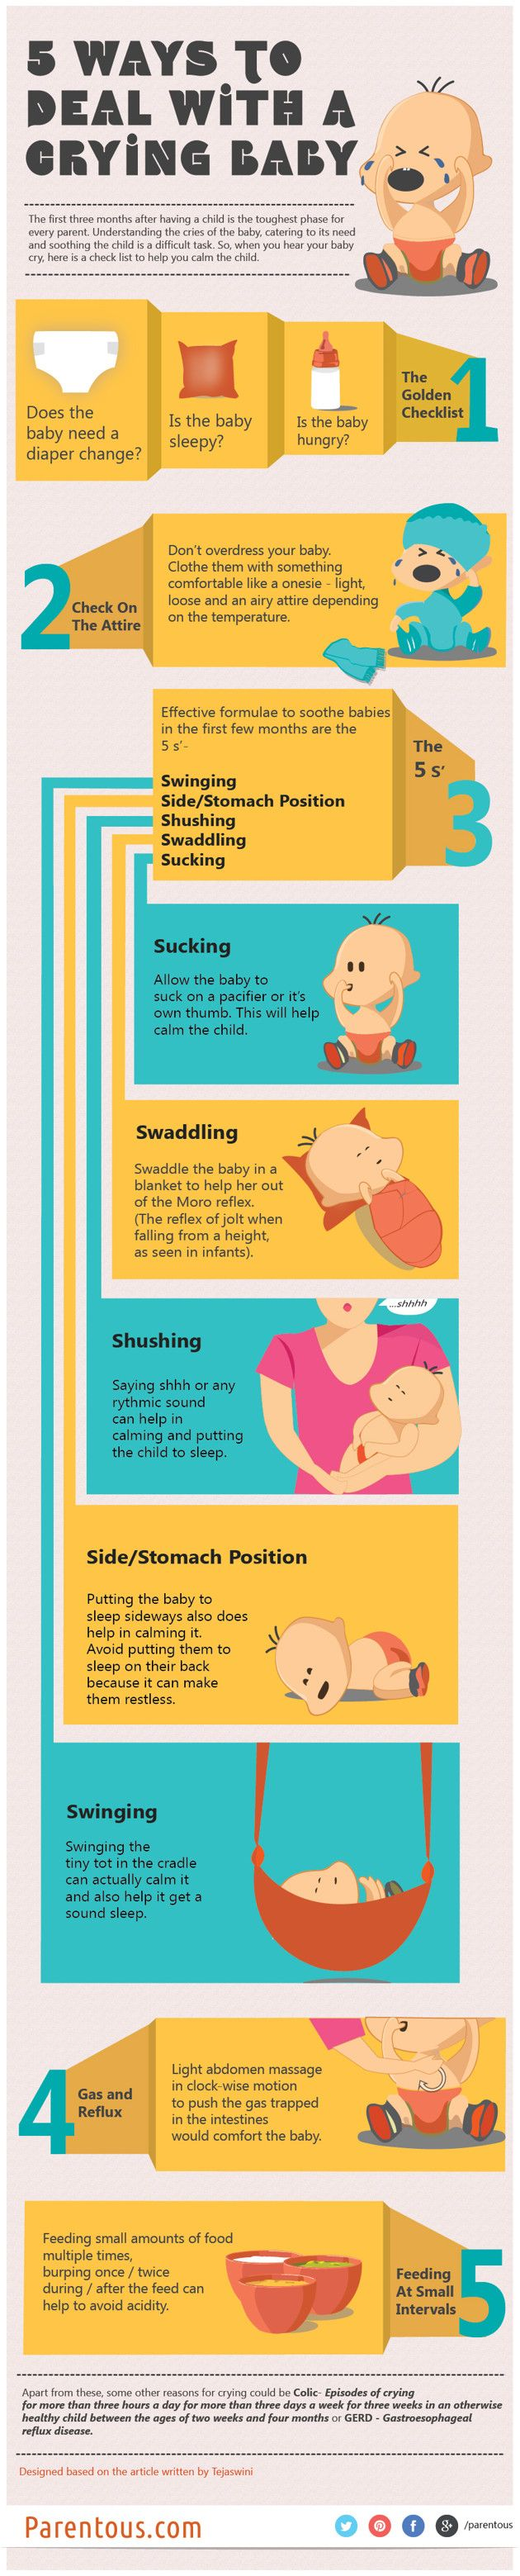 Is your baby eating enough? Are you weary from the all-night child antics? Why do all the hard work and research on your own? This information can save you time and frustration as a parent.